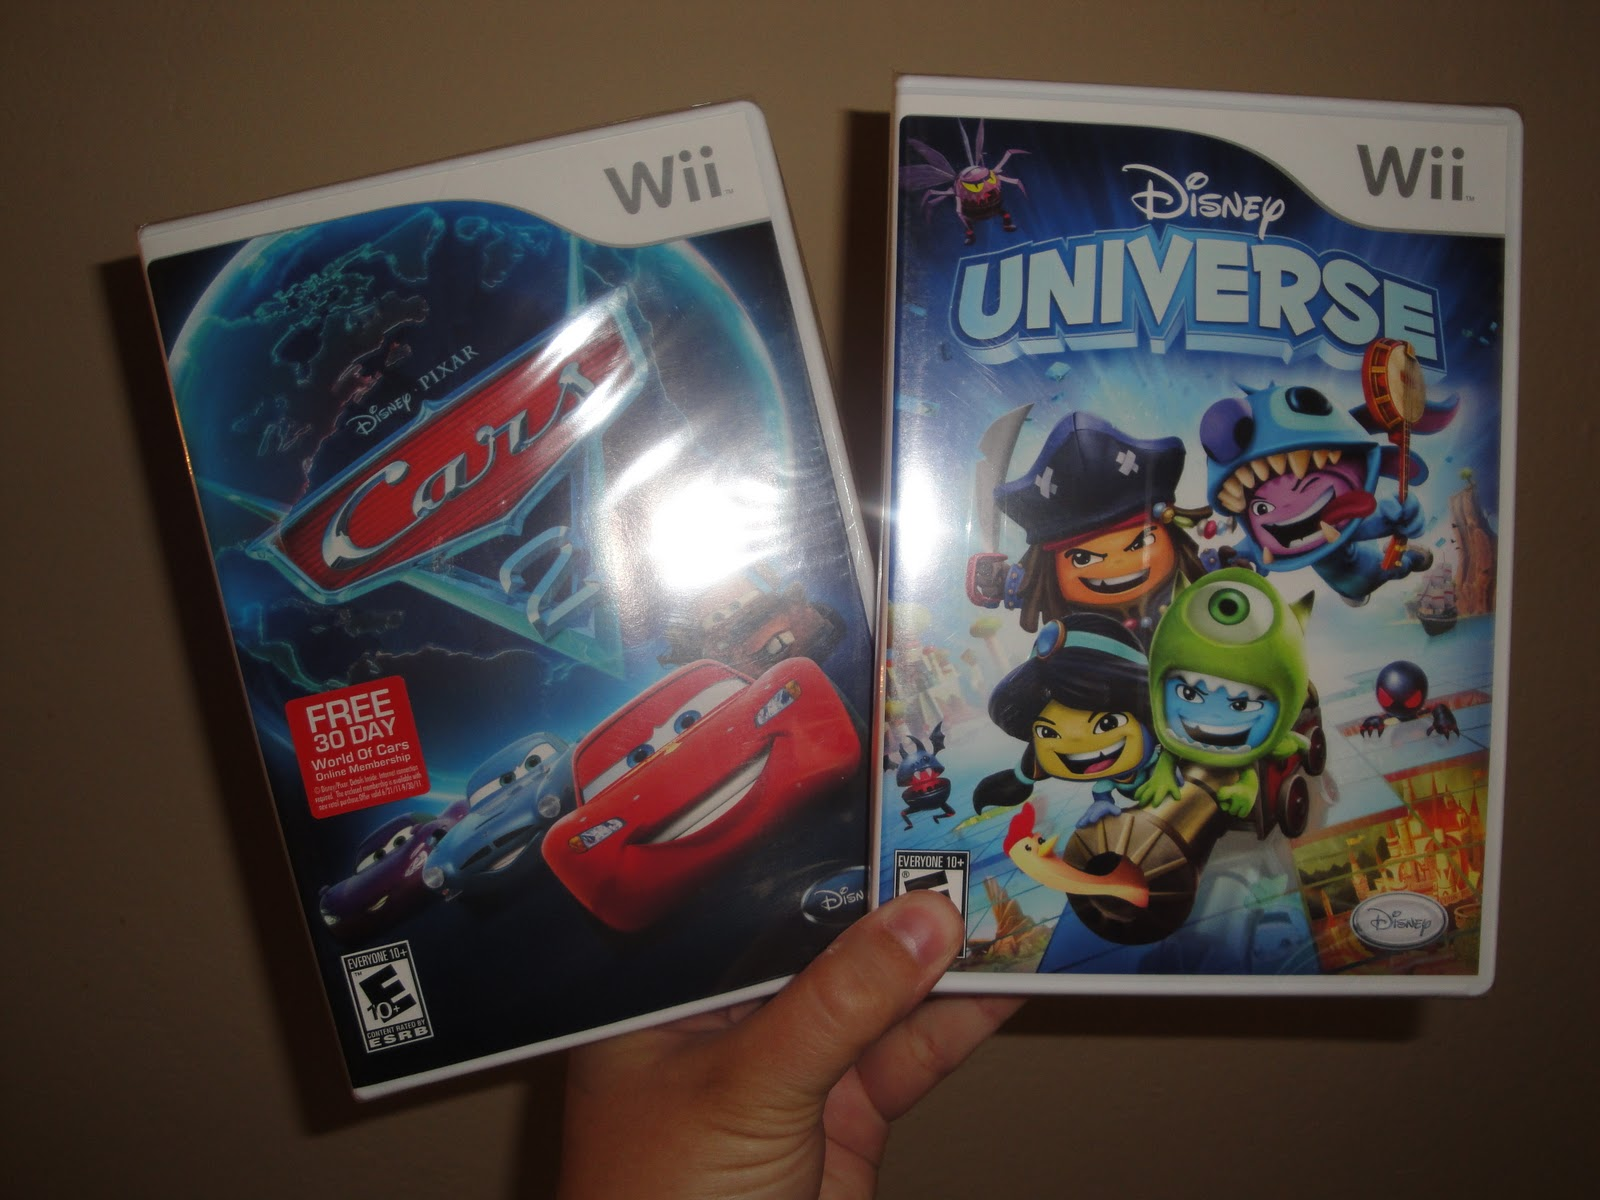 Disney Wii Games: Cars 2 & Disney Universe Review | Frugal Family Tree